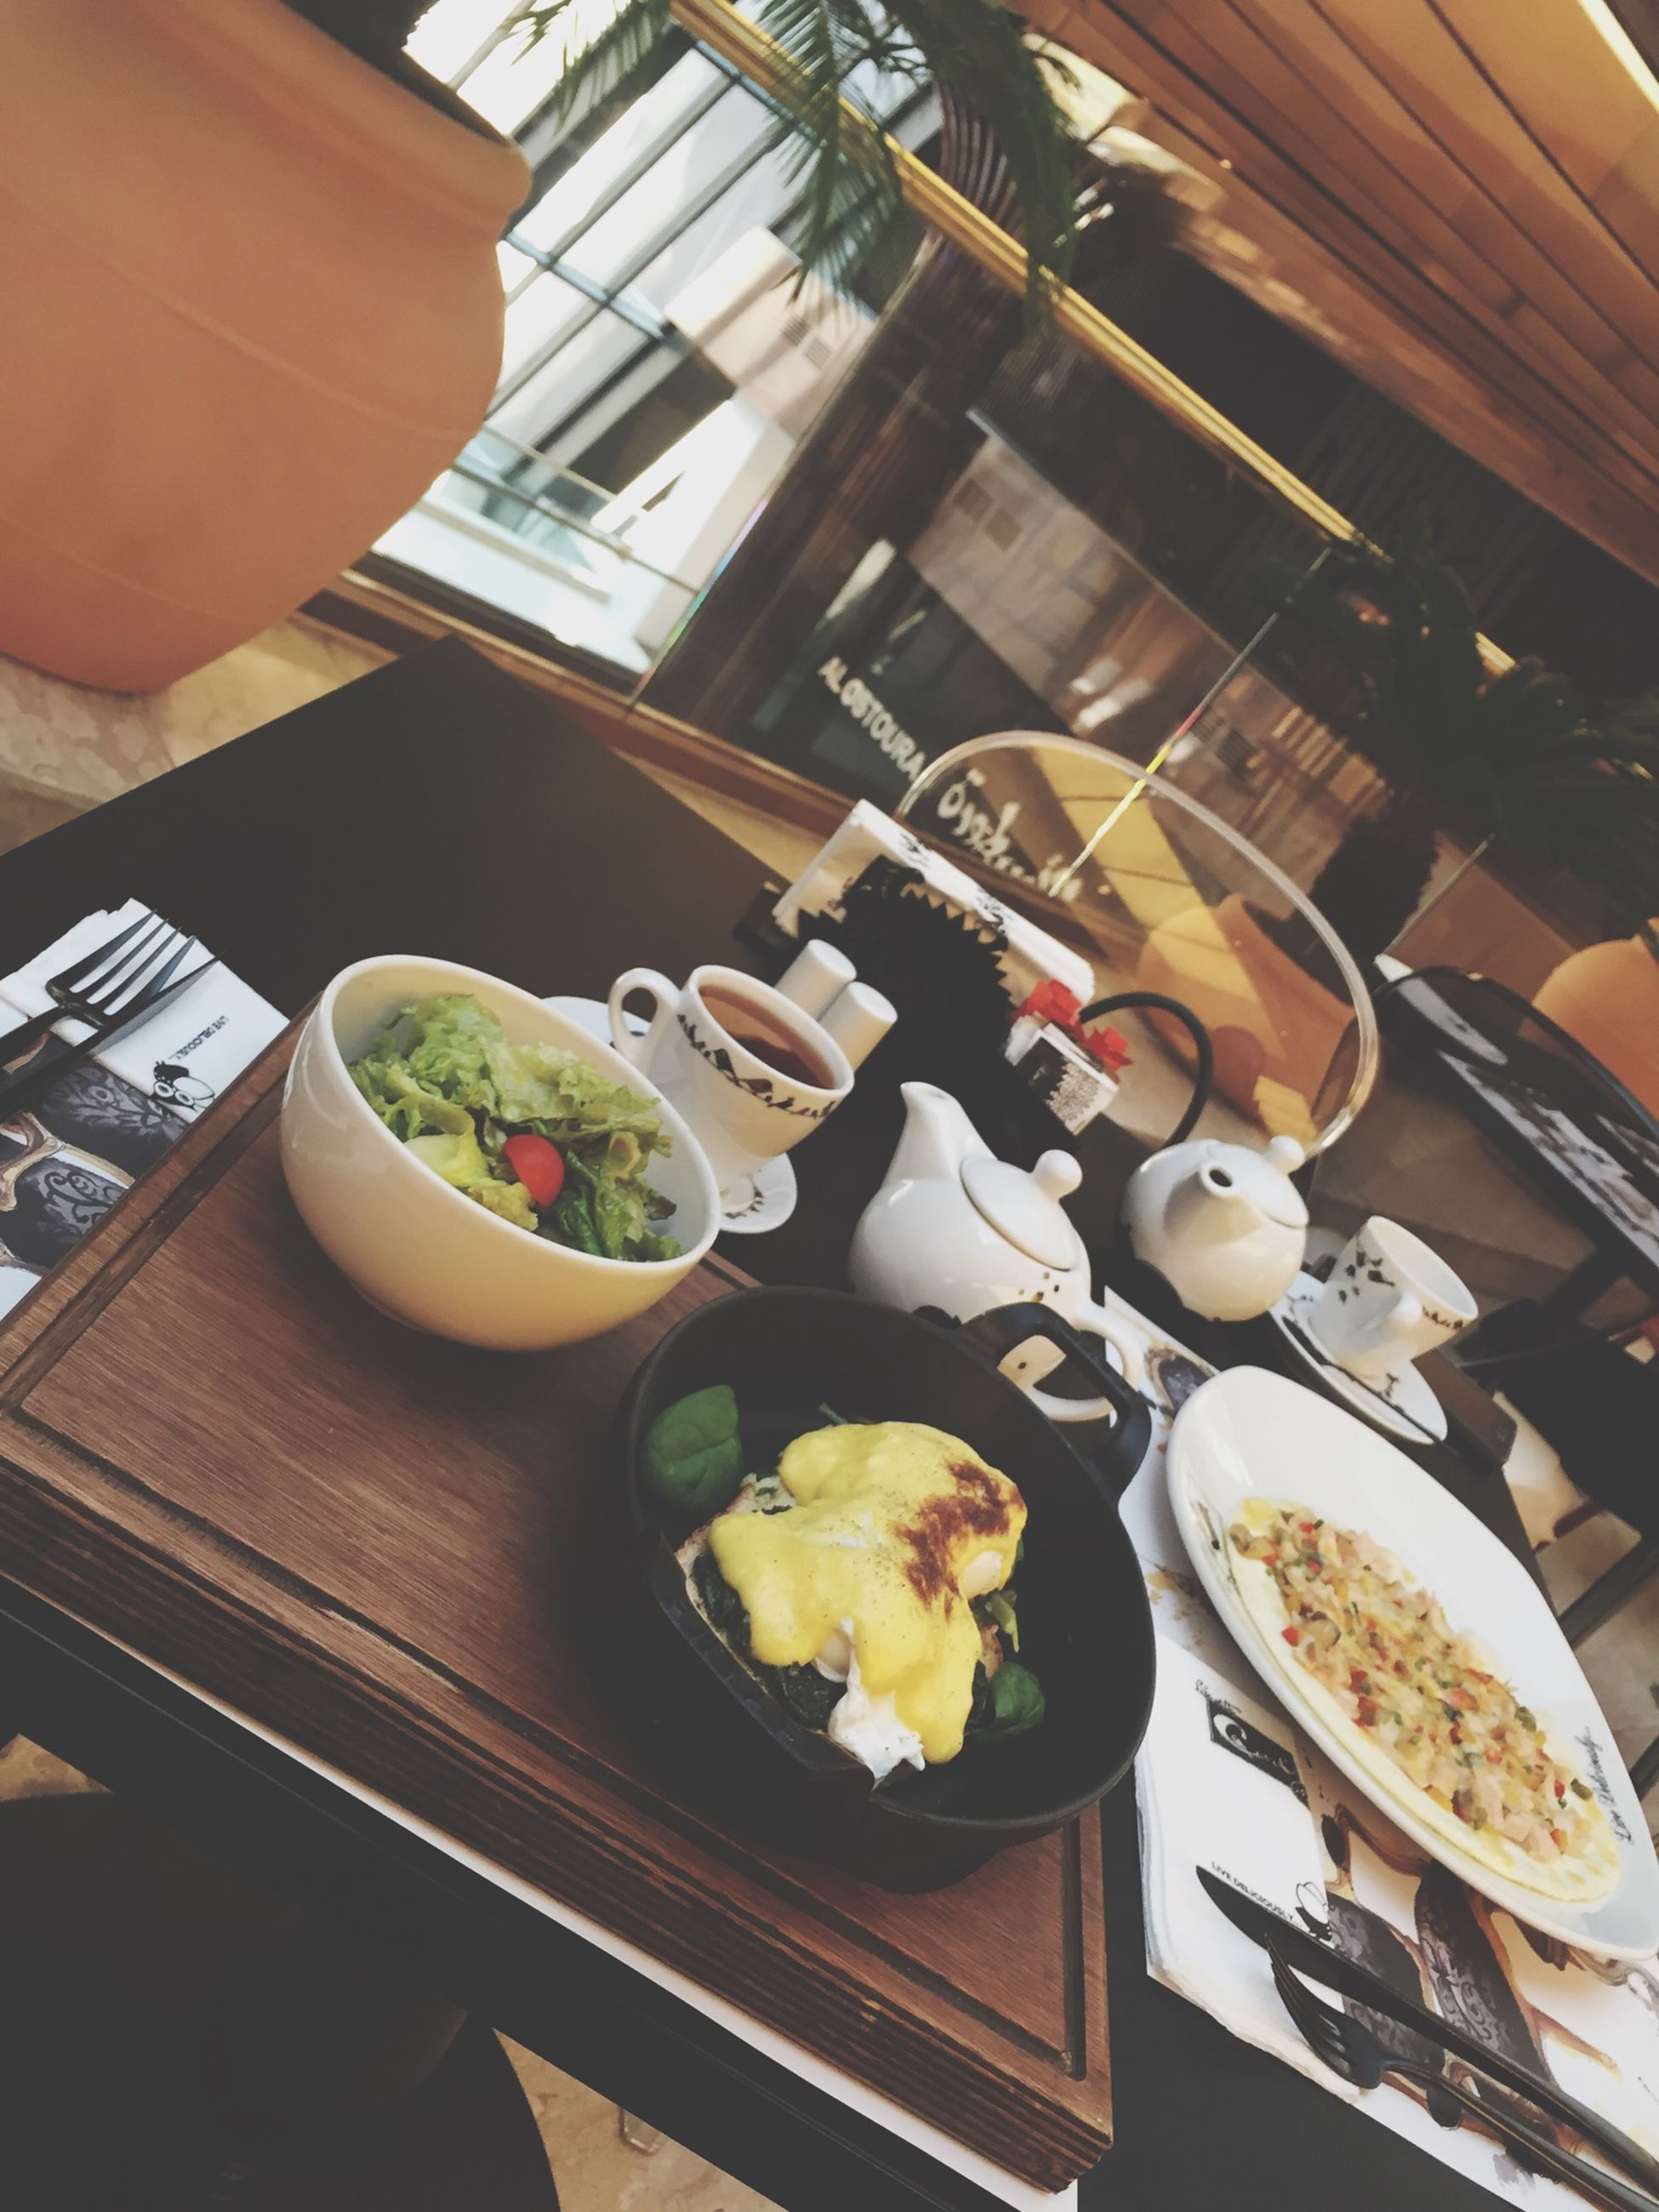 indoors, table, food and drink, freshness, high angle view, still life, plate, food, bowl, no people, home interior, variation, flower, wood - material, chair, restaurant, ready-to-eat, glass - material, fork, close-up